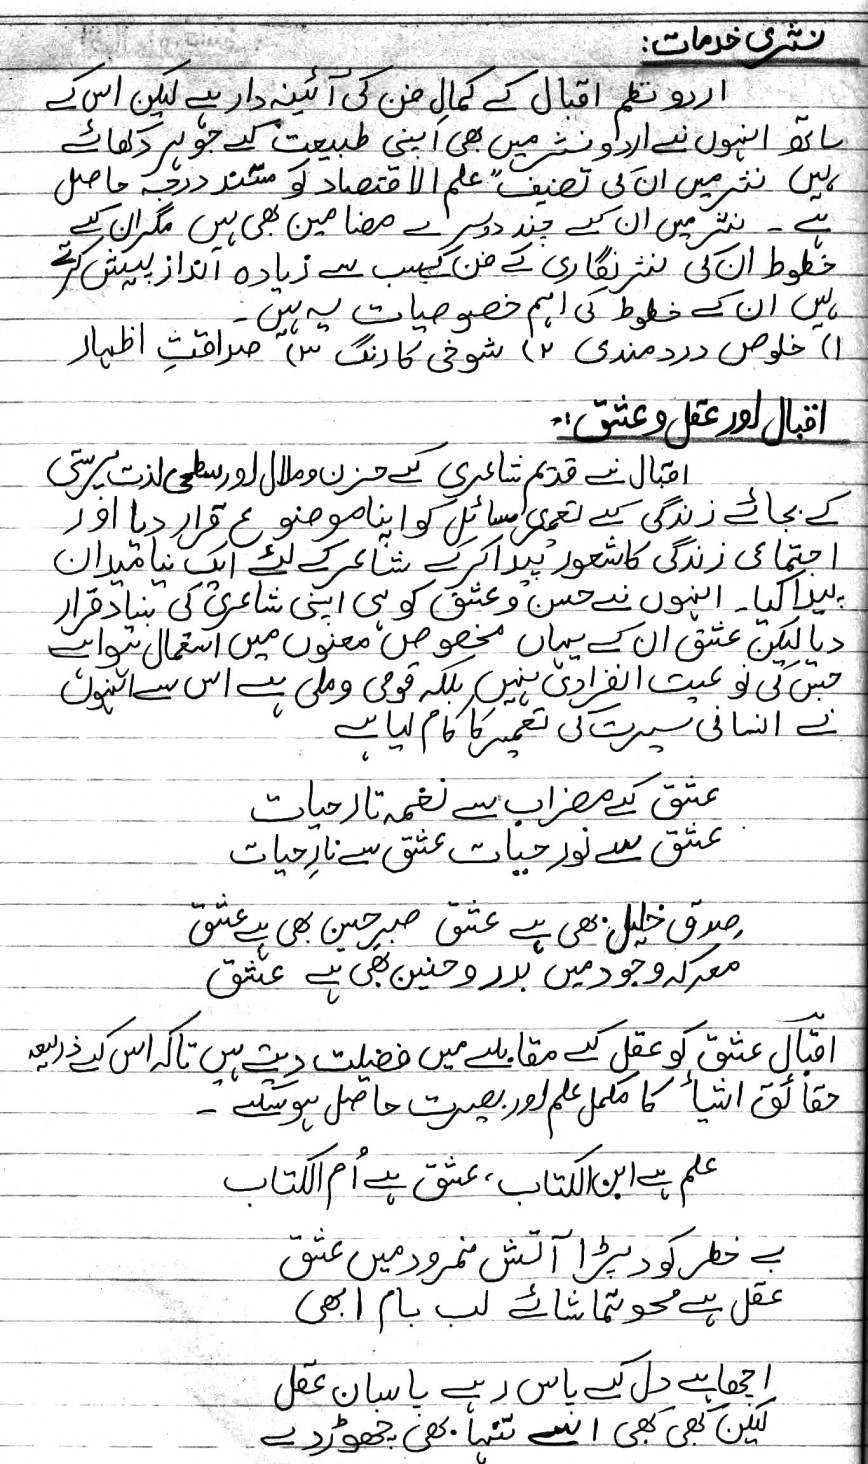 005 Urdu Essay Allama Iqbal Jpg Dreaded On In For Class 10 With Poetry Ka Shaheen Headings And 868